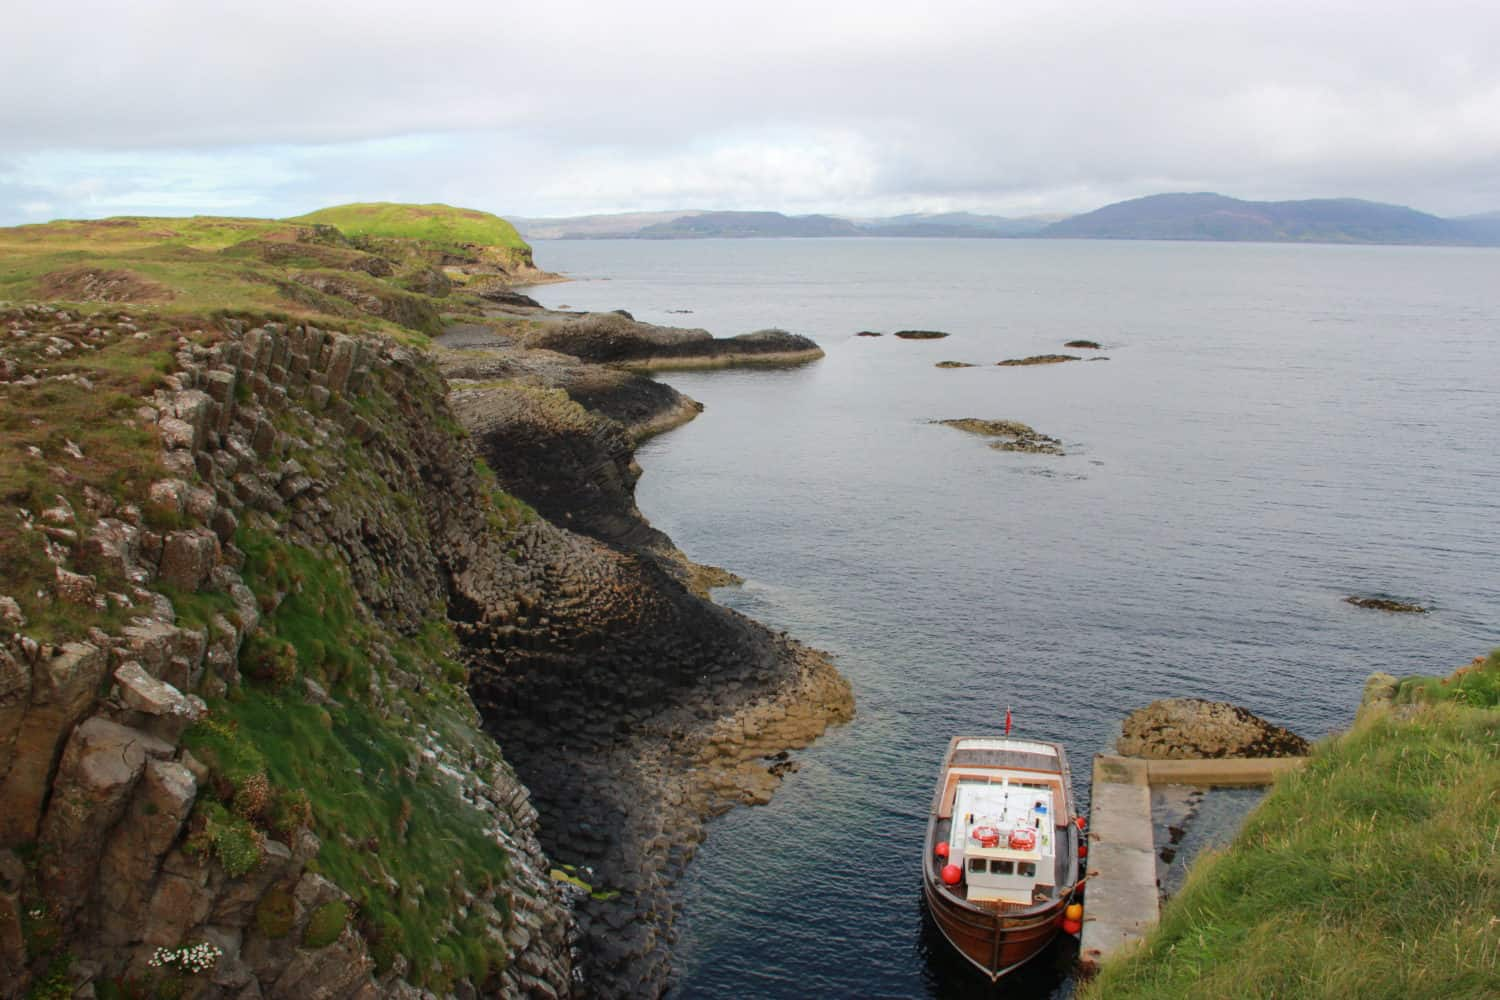 A half-day boat trip to the Isle of Staffa, off Scotland's west coast, is a must-do on any Scottish itinerary